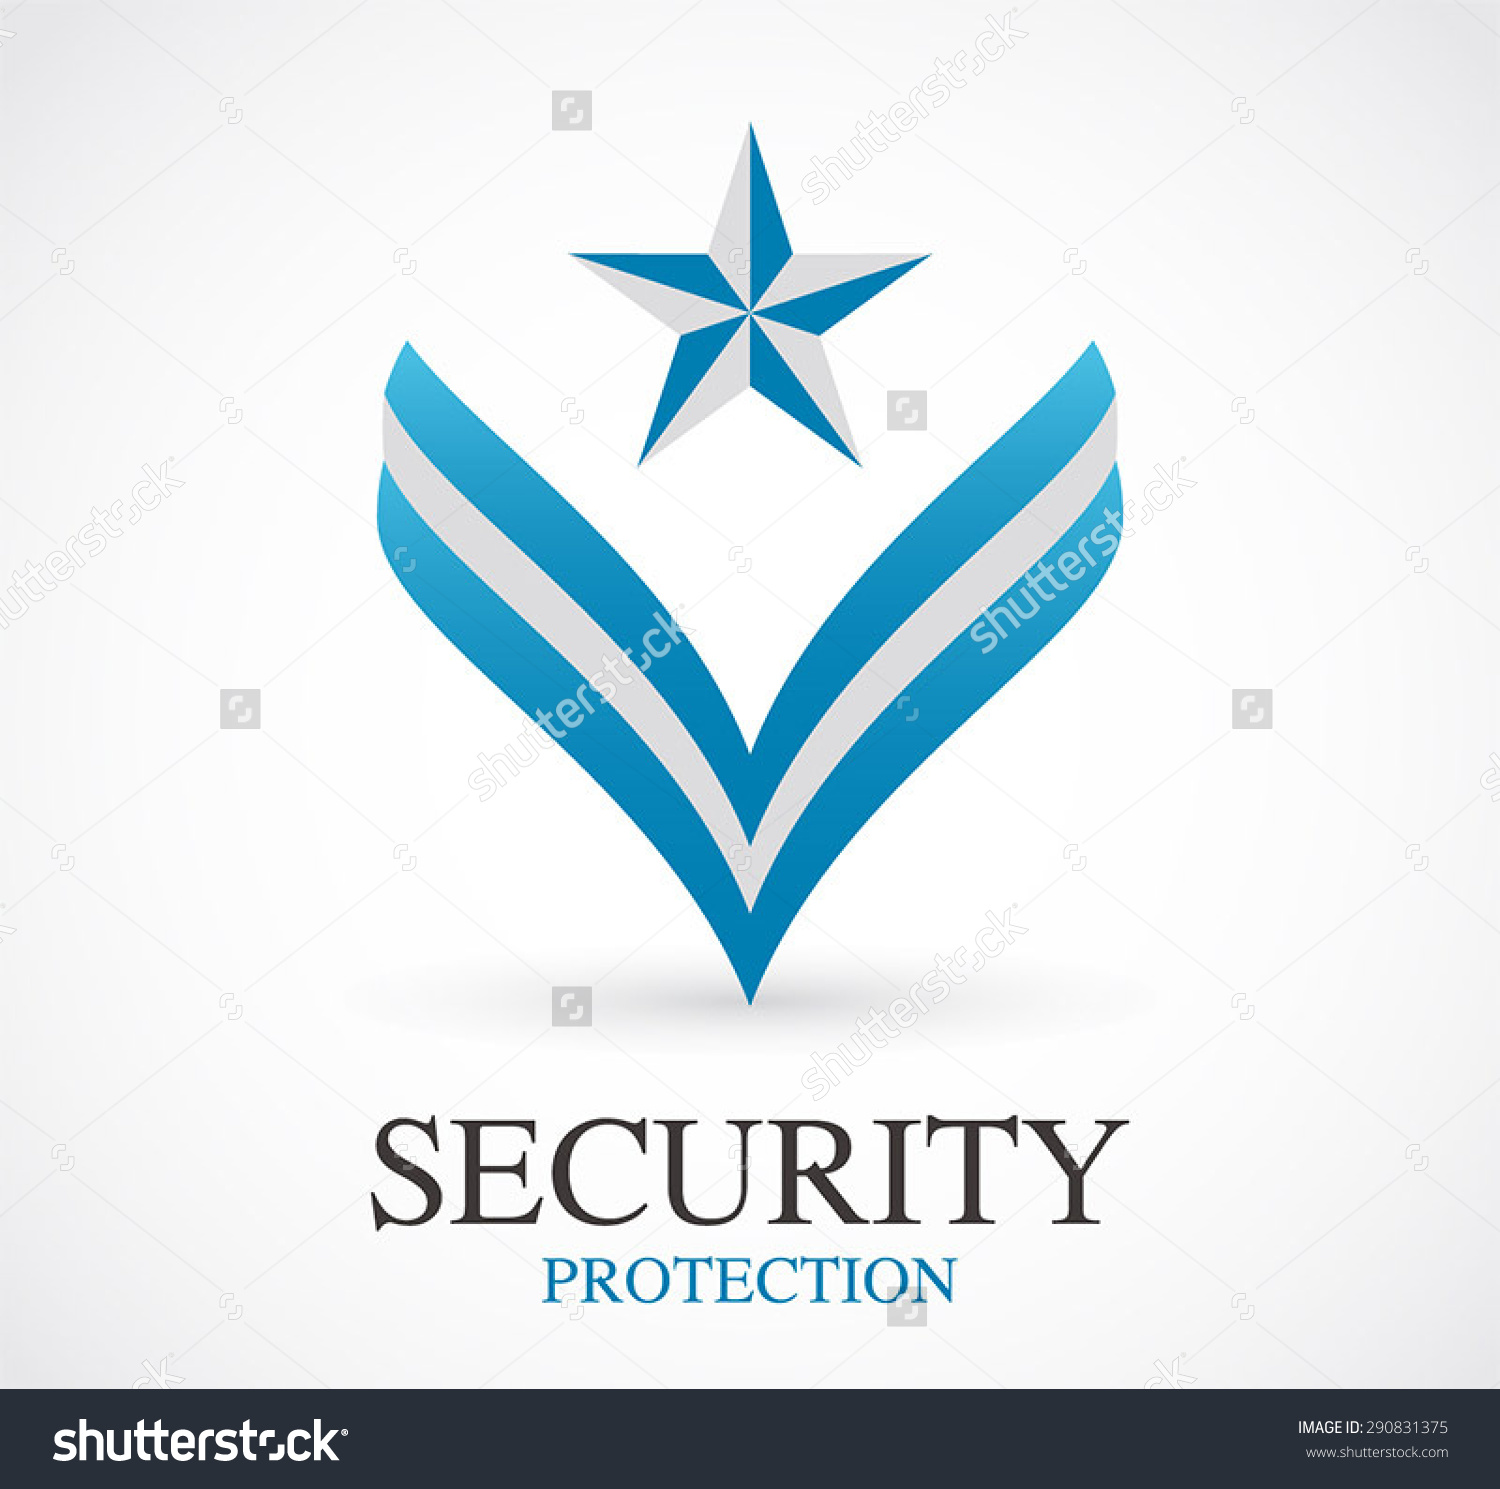 Security logo clipart sign svg free stock Security logo clipart sign - ClipartFest svg free stock